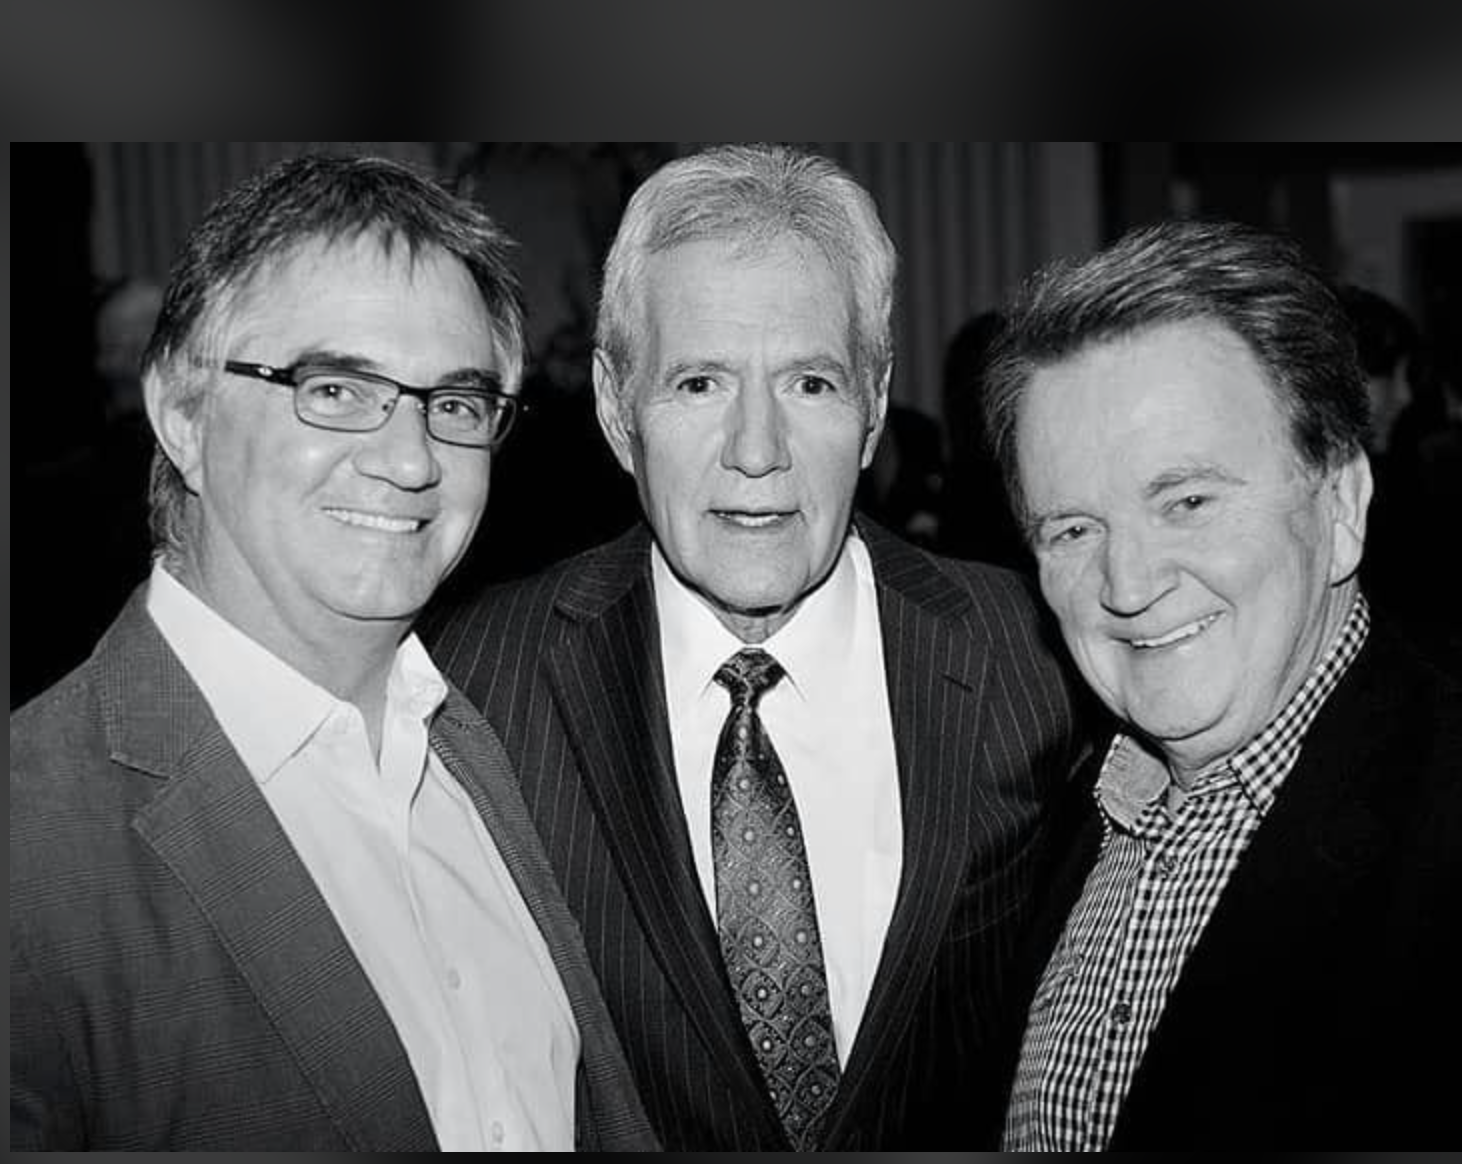 With Hart Hanson and Alex Trebek